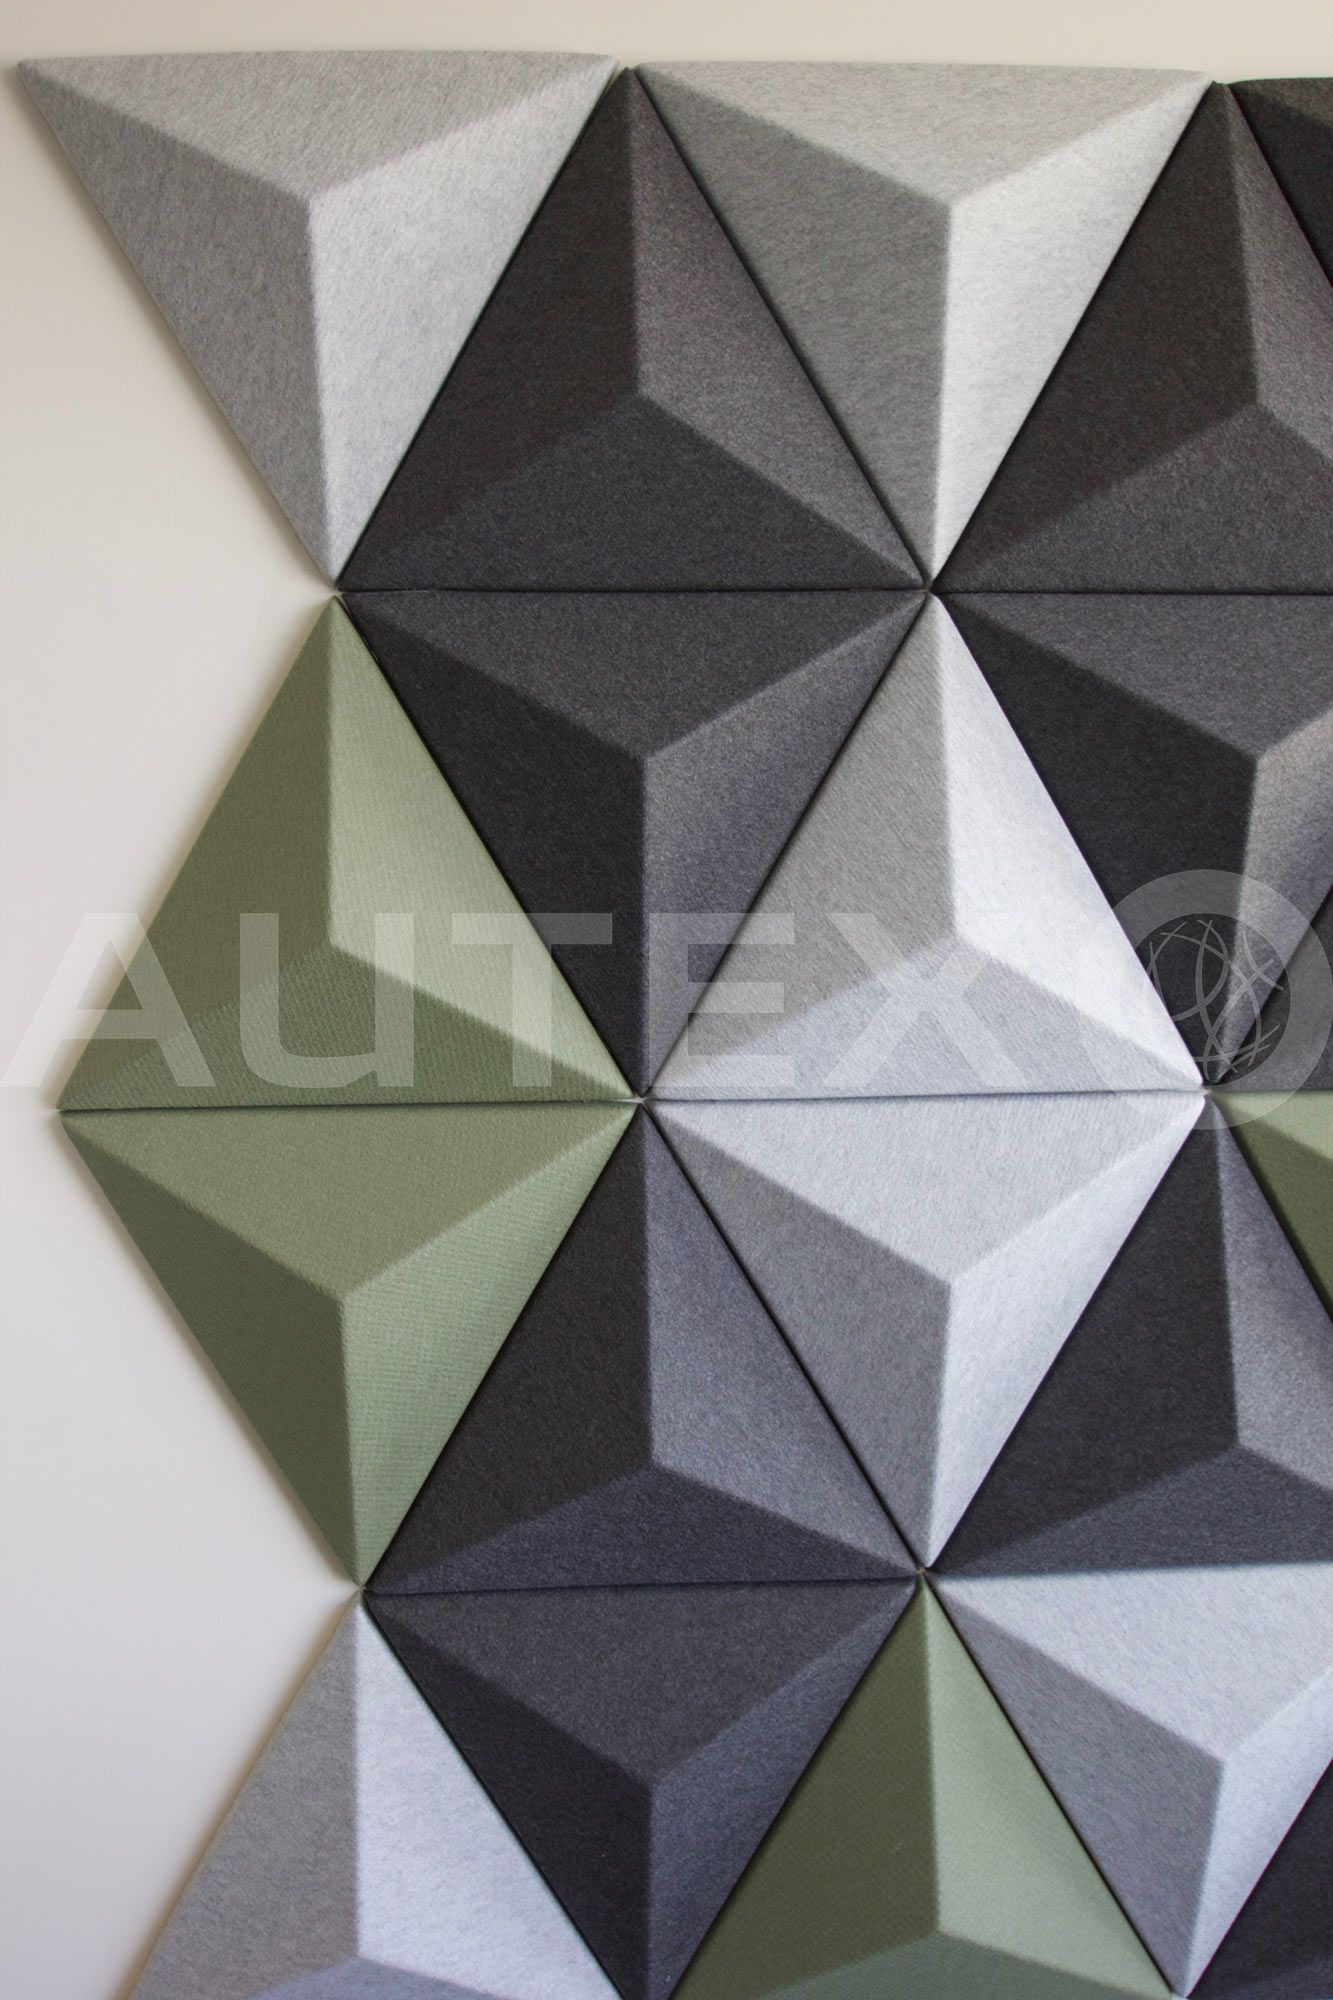 Autex Interior Acoustics - Quietspace® 3D Tiles - Autex Head Office